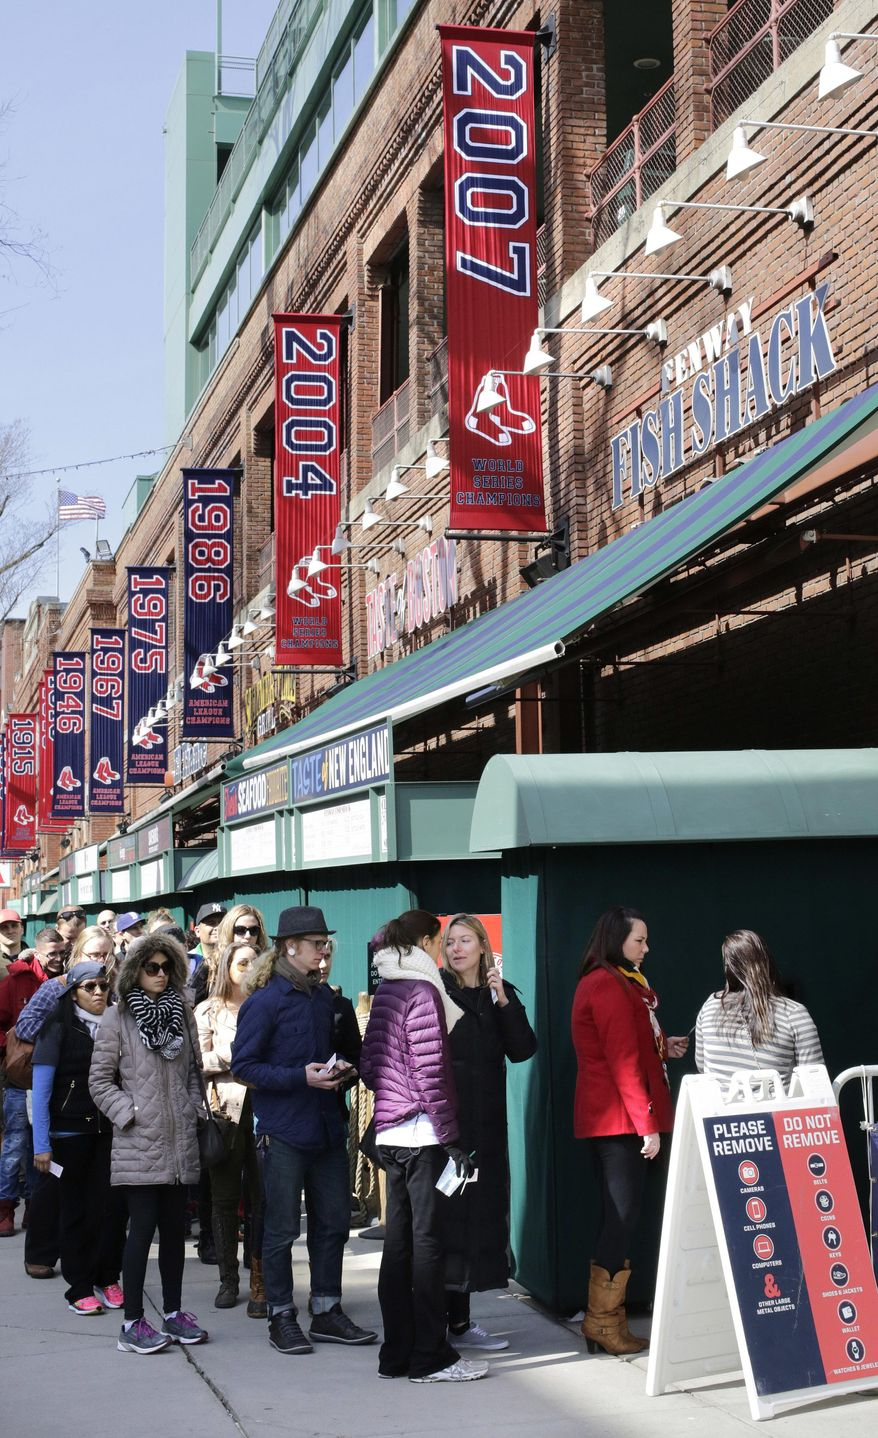 People form a line outside Fenway Park while waiting for a guided tour of the baseball park, Sunday, April 10, 2016, in Boston. The Red Sox are to play the Baltimore Orioles, Monday at Fenway in their home-opener. (AP Photo/Steven Senne)